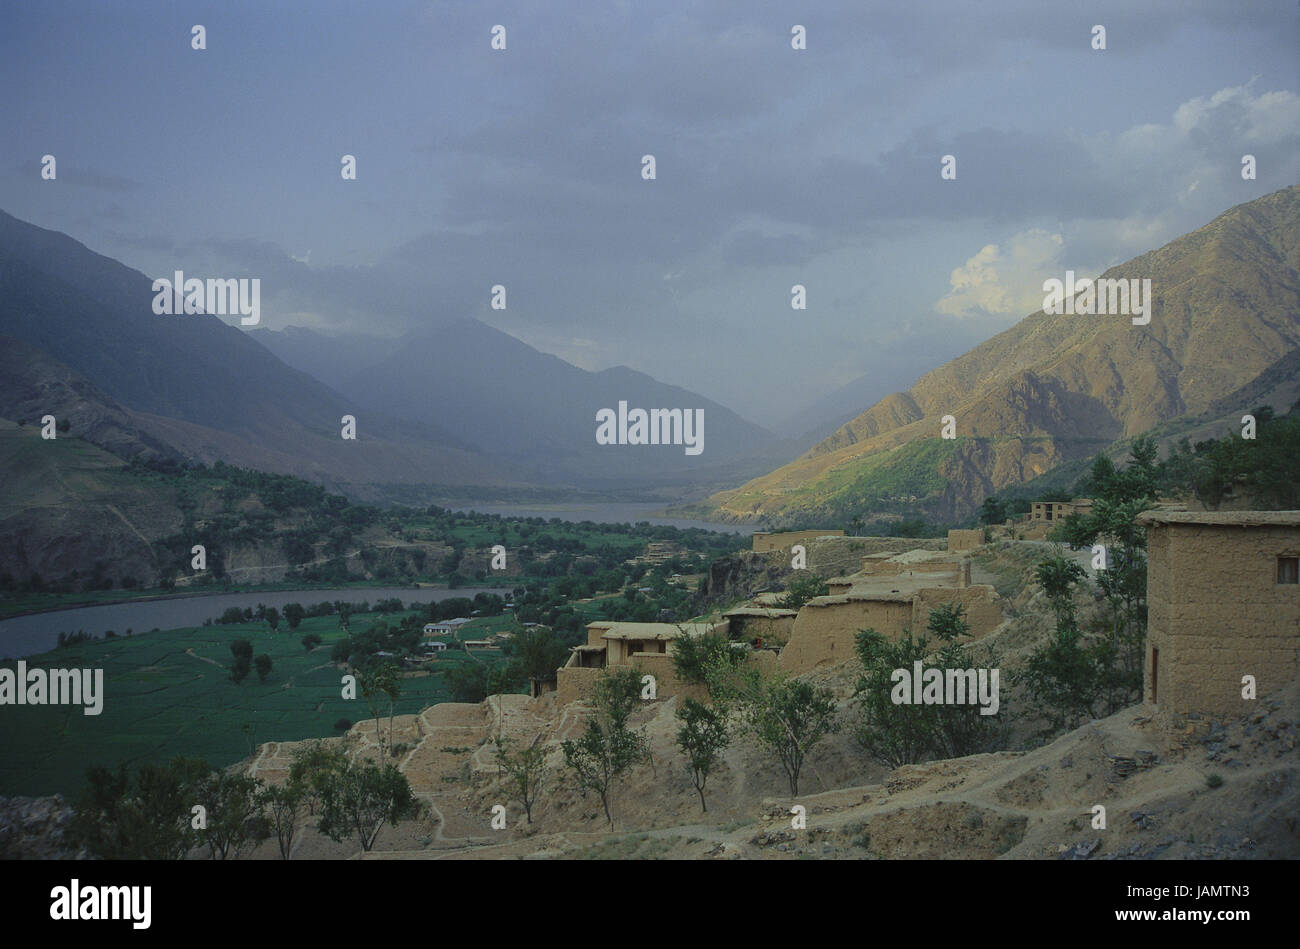 Pakistan,Chitral,scenery,river,place,Asia,mountains,mountains,view,nature,travel,mountain landscape,valley,houses,vegetation,sky,cloudies, - Stock Image